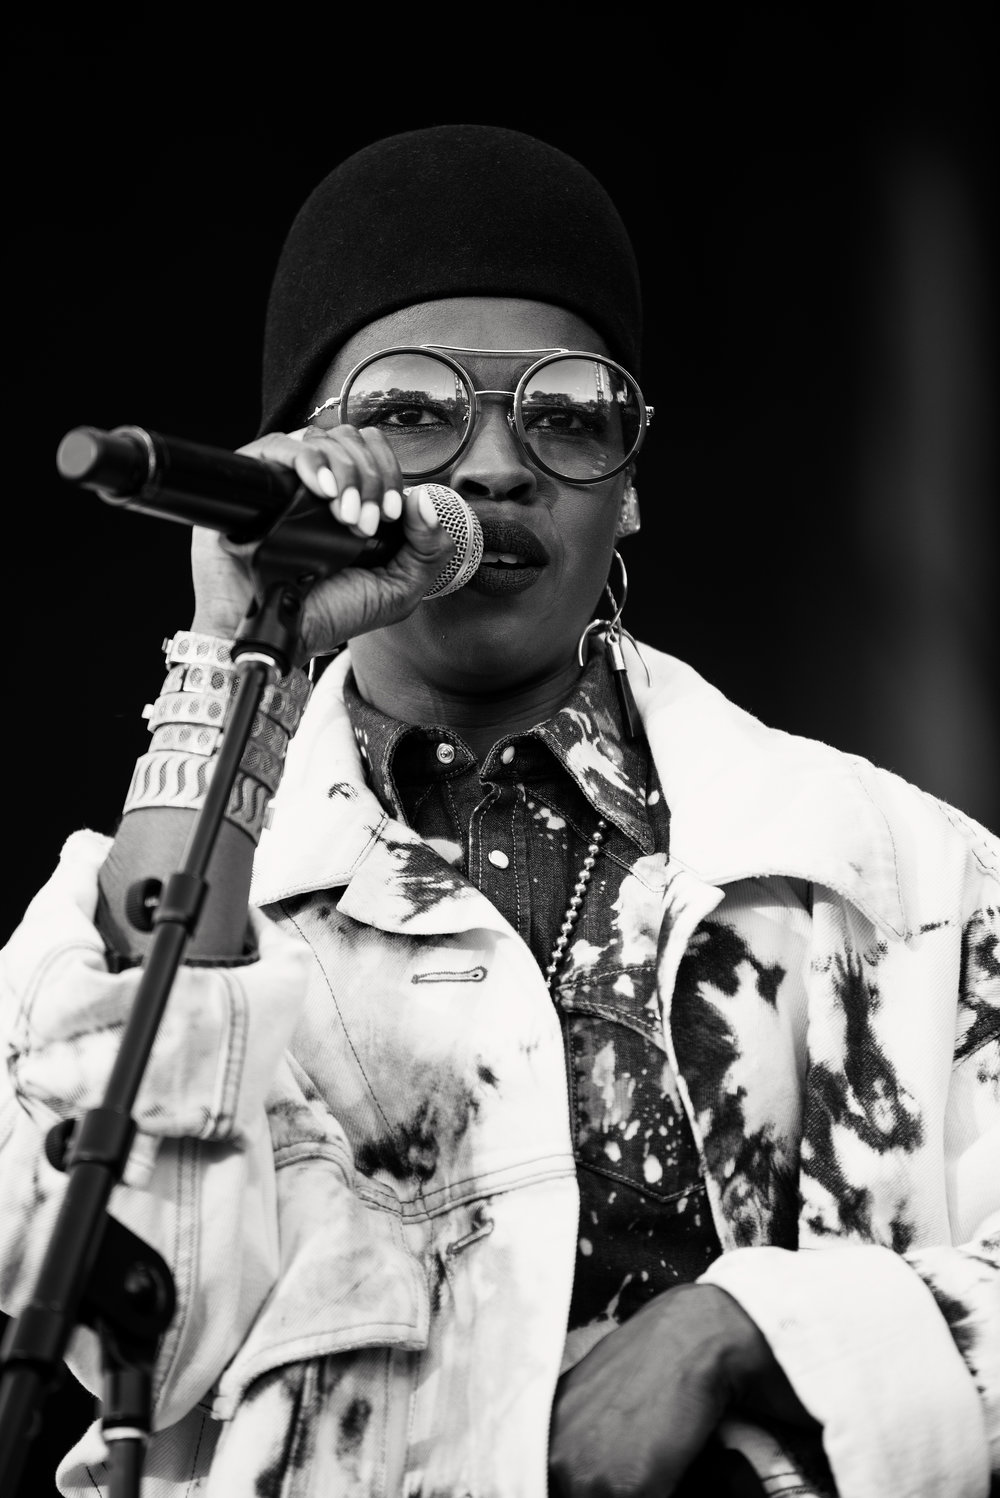 Ms Lauryn Hill x Soundset